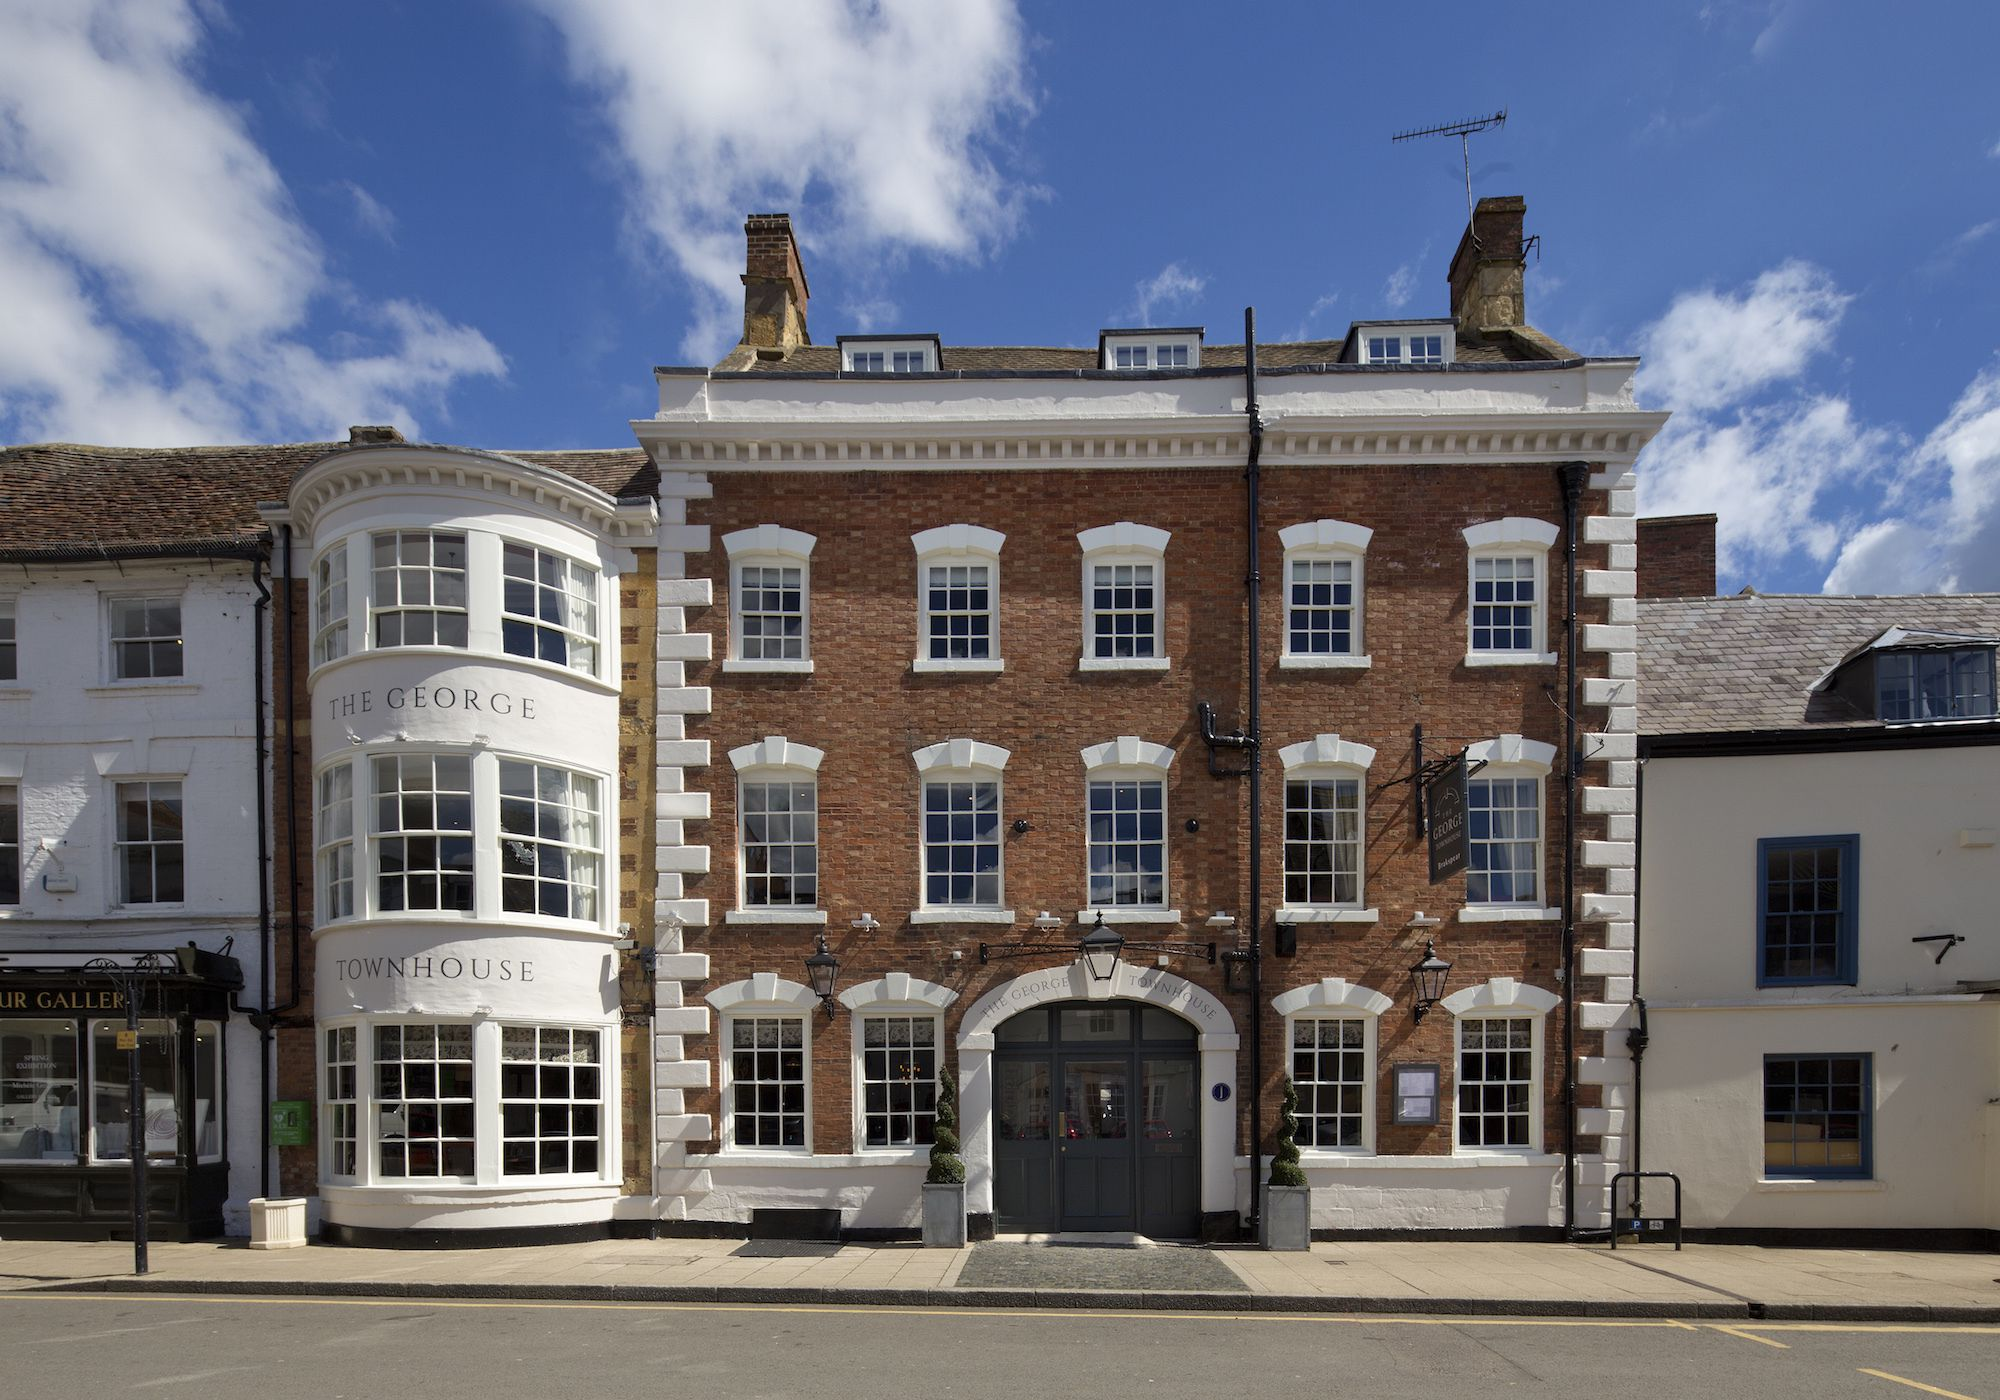 Hotels in Shipston-on-Stour holidays at Cool Places